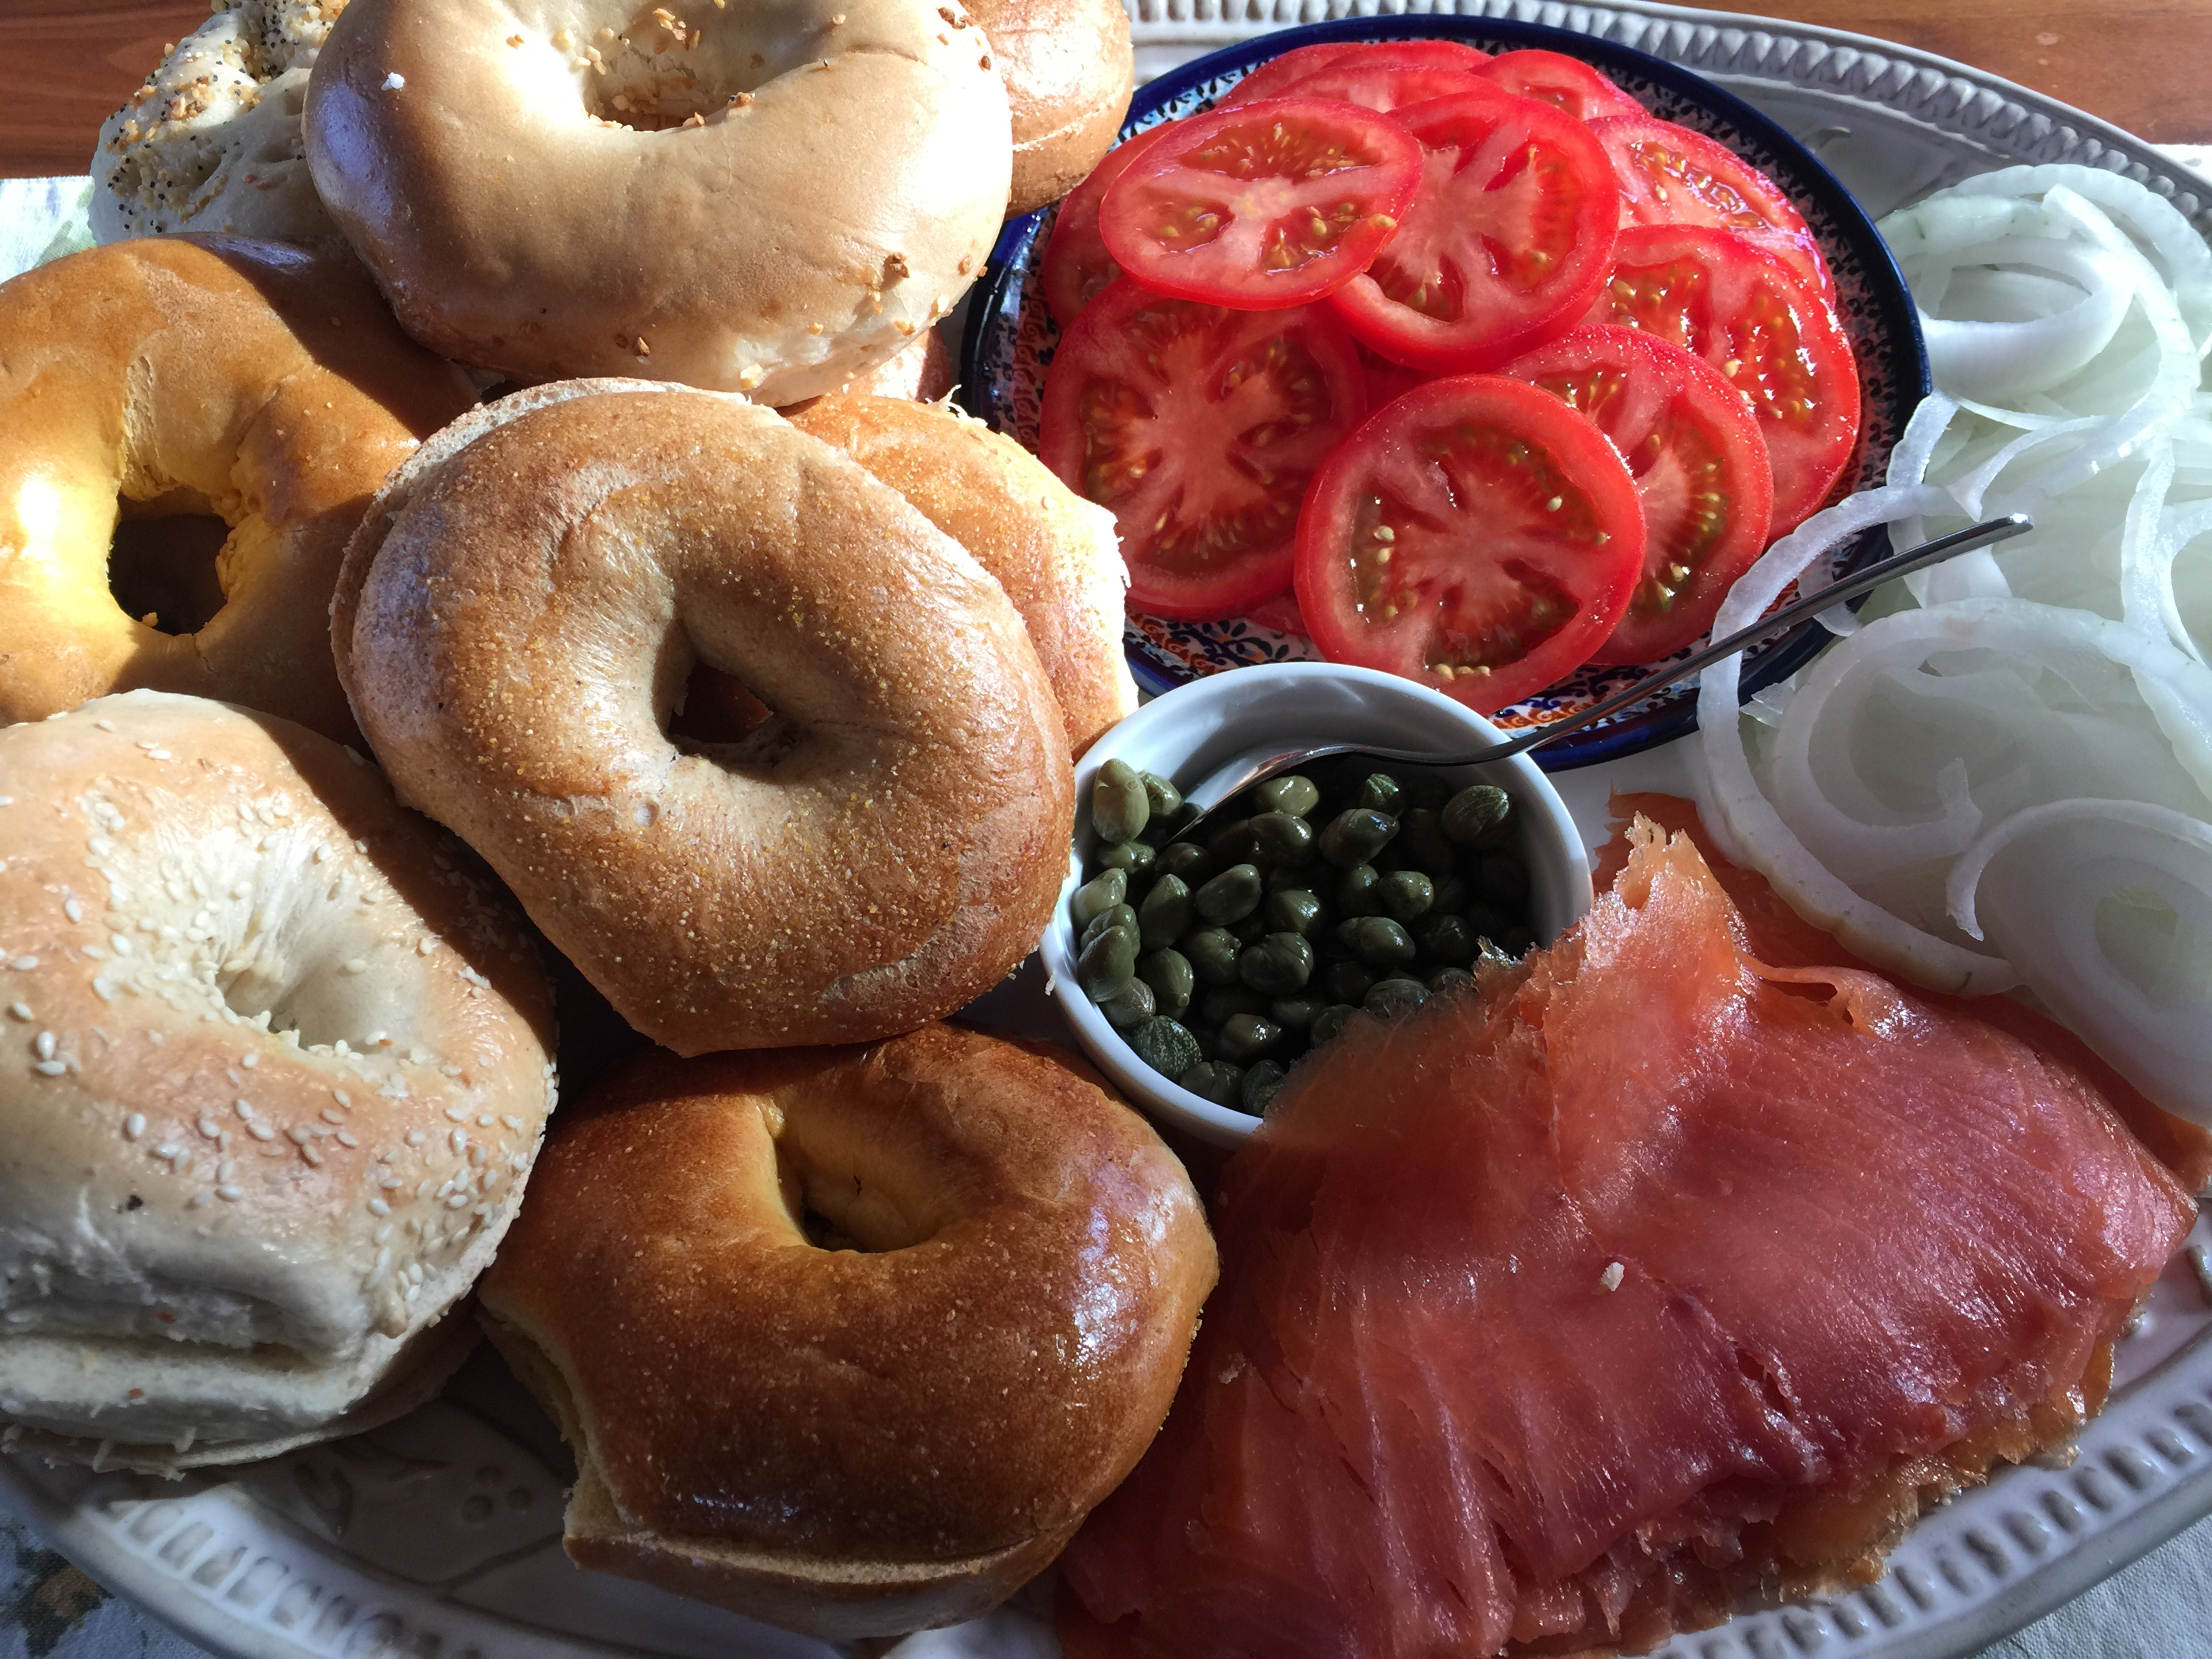 Mother's Day Brunch Options: 4 Luscious Egg Dishes and a Deluxe Bagel Platter